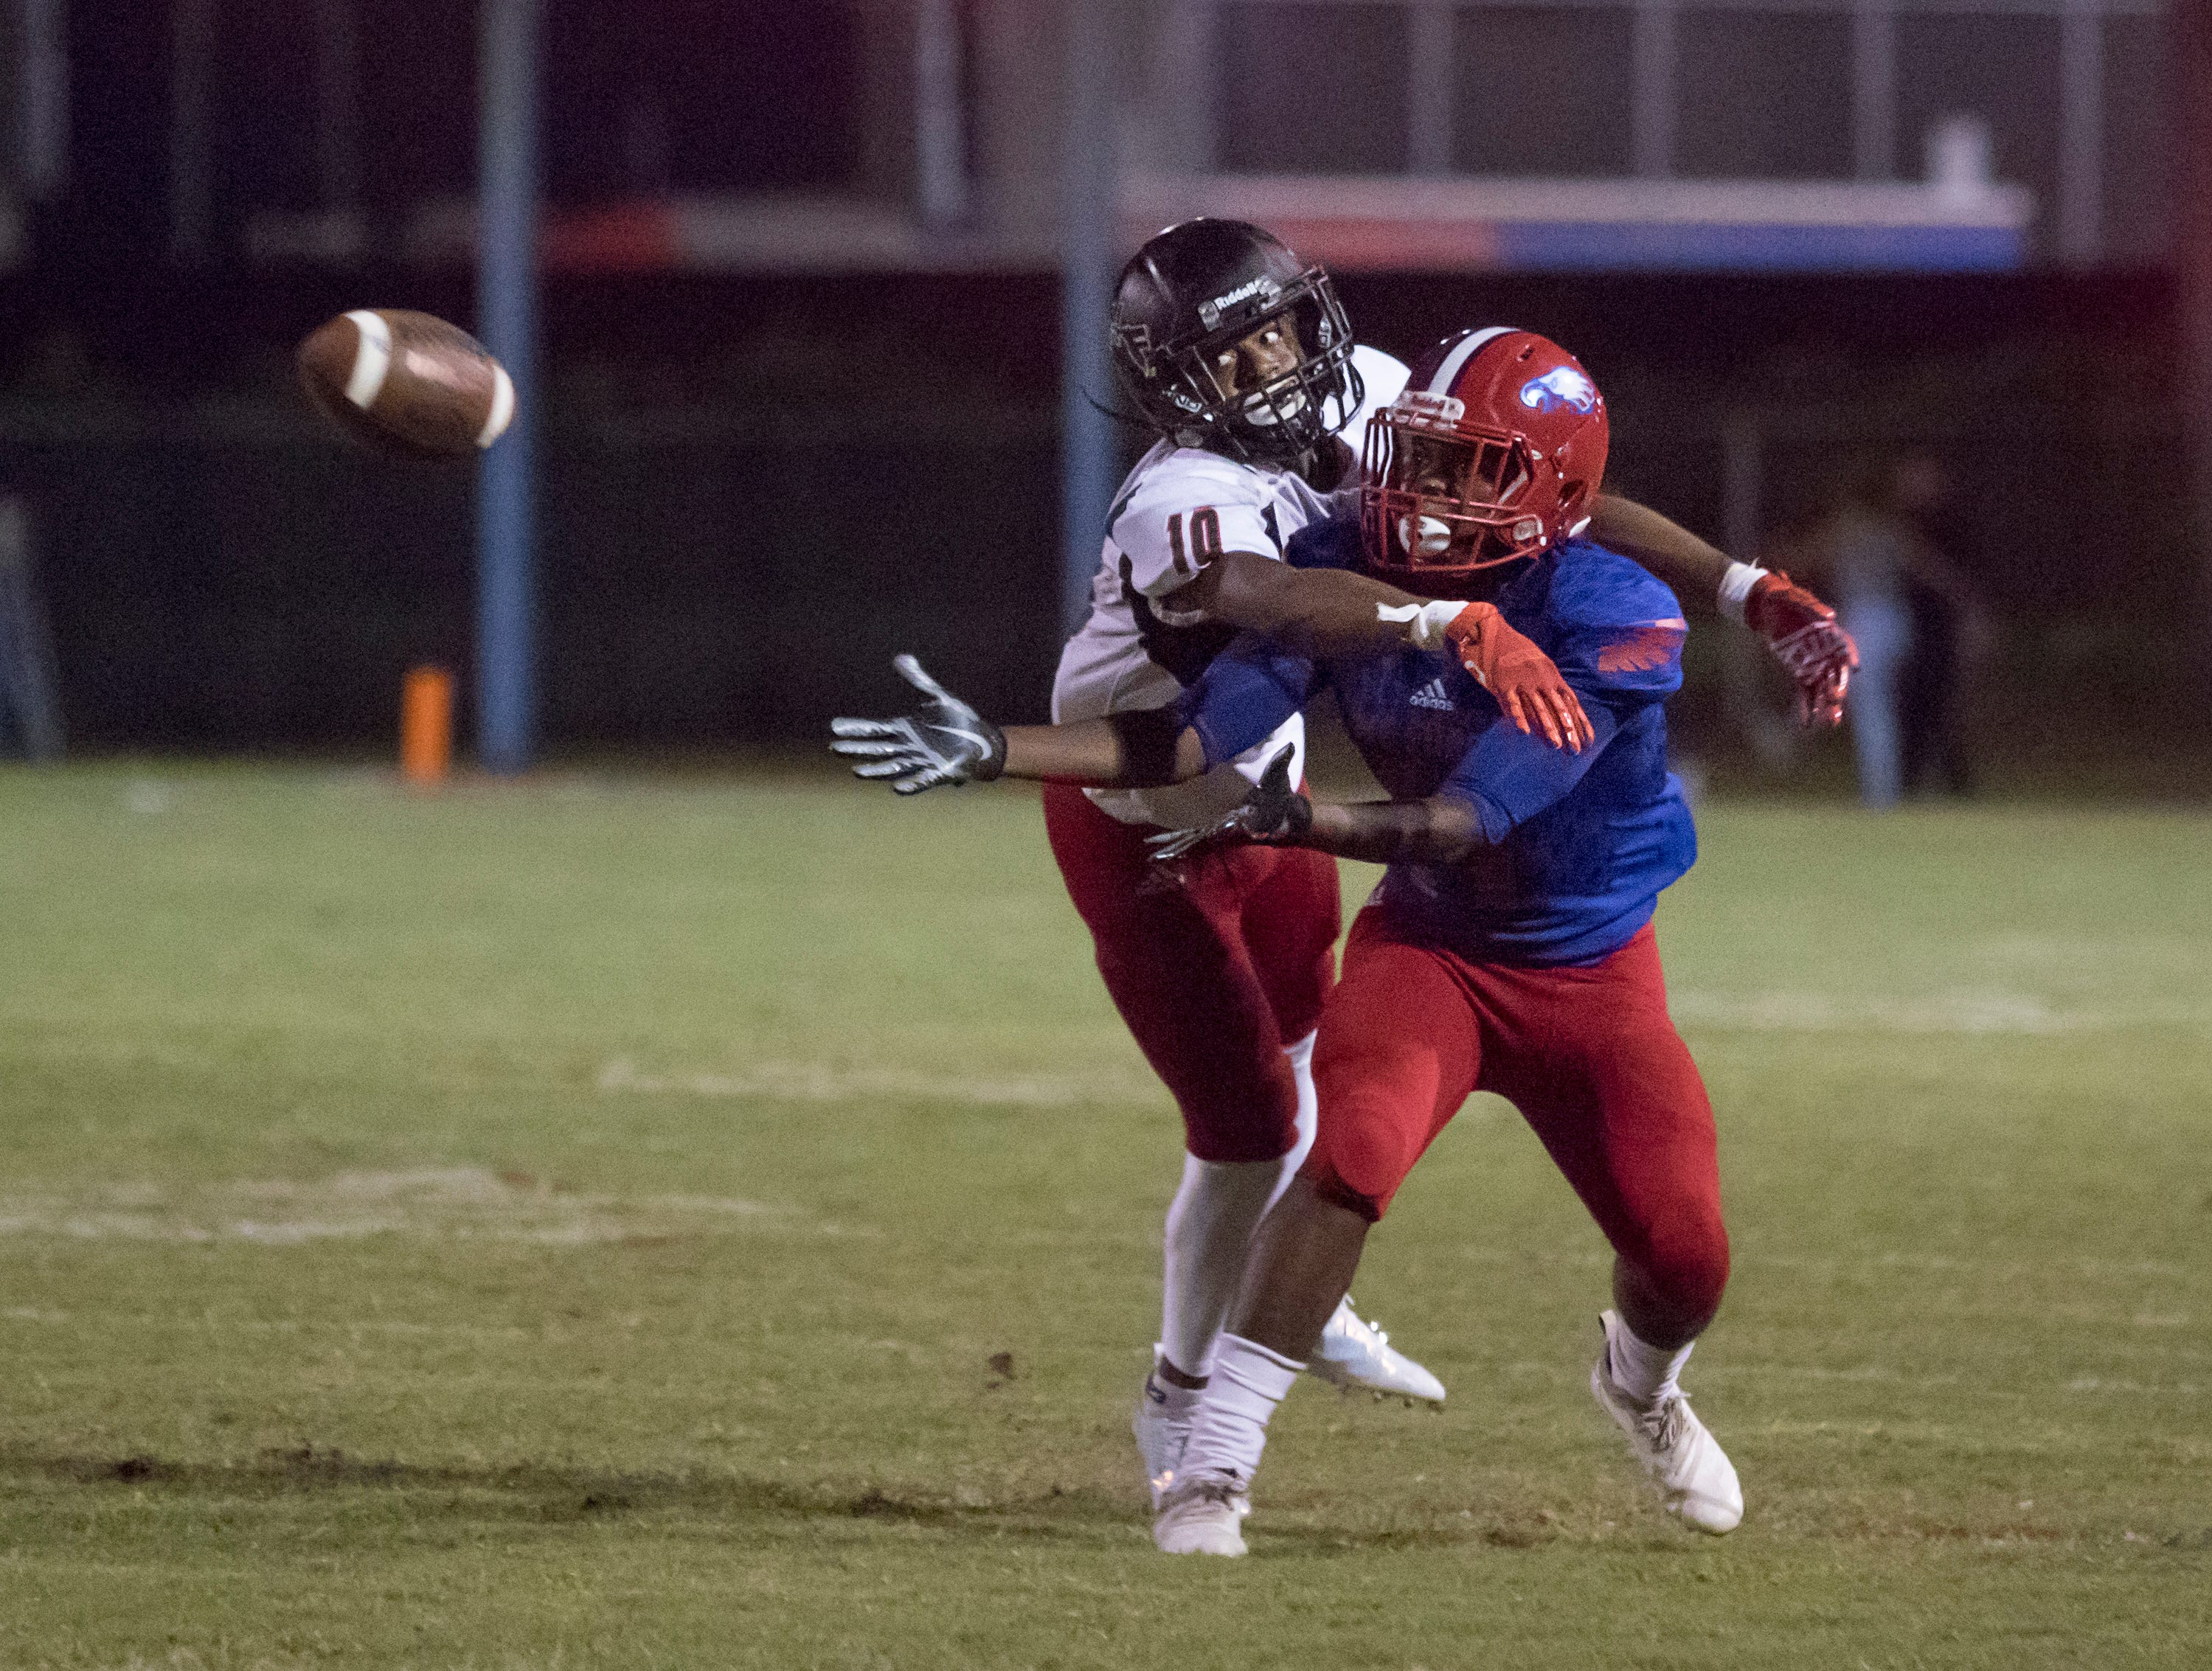 Donte Thompson (10) breaks up the pass during the West Florida vs Pine Forest football game at Pine Forest High School in Pensacola on Friday, October 5, 2018.